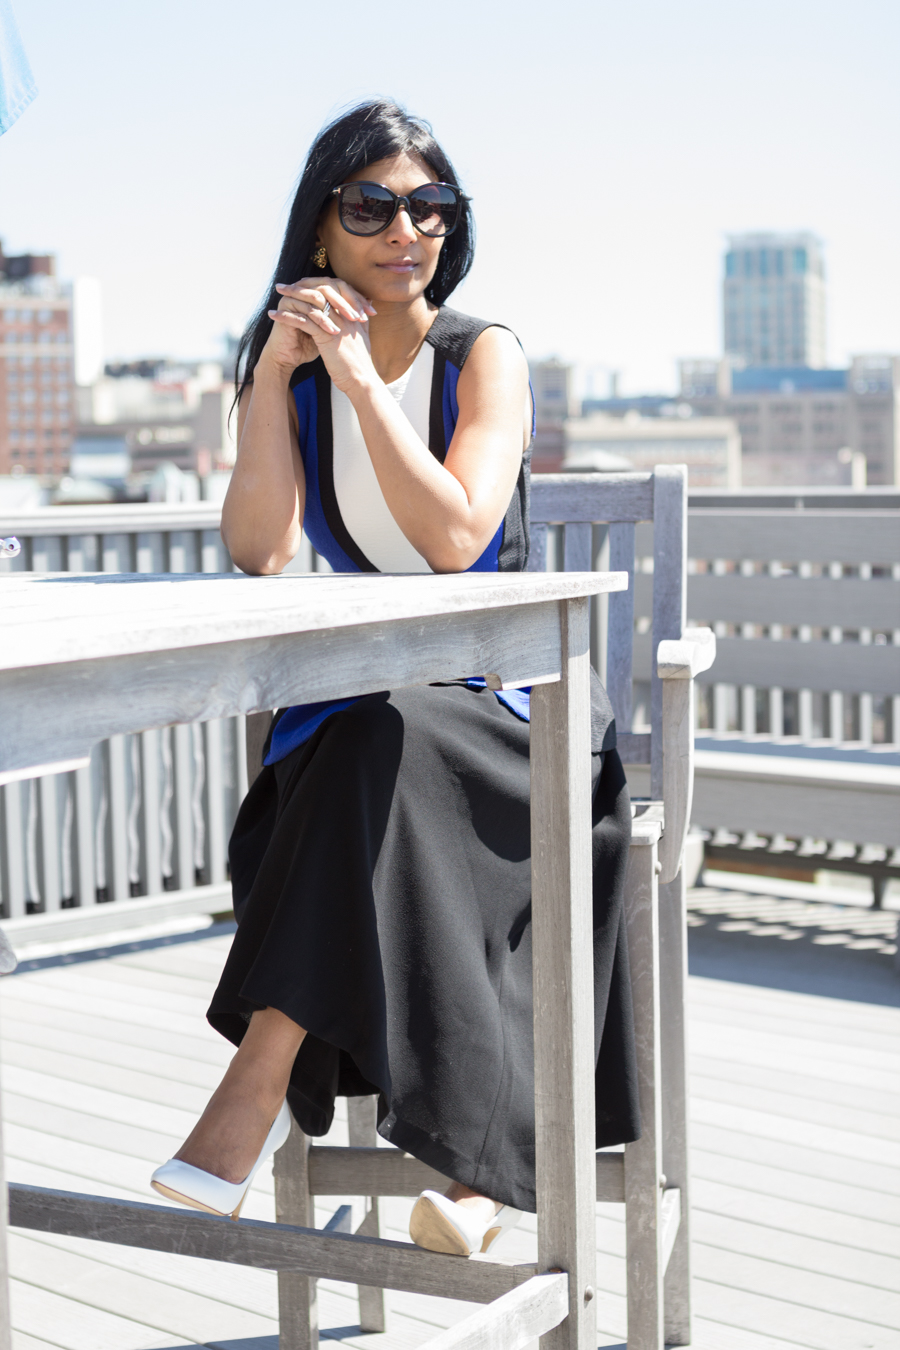 circle skirt, peplum top, spring fashion, white pumps, charles david, color-blocked, bright blue, black floppy hat, sporty chic, minimalist, spring lookbook, petite fashion, mom style, mom fashion, boston street style